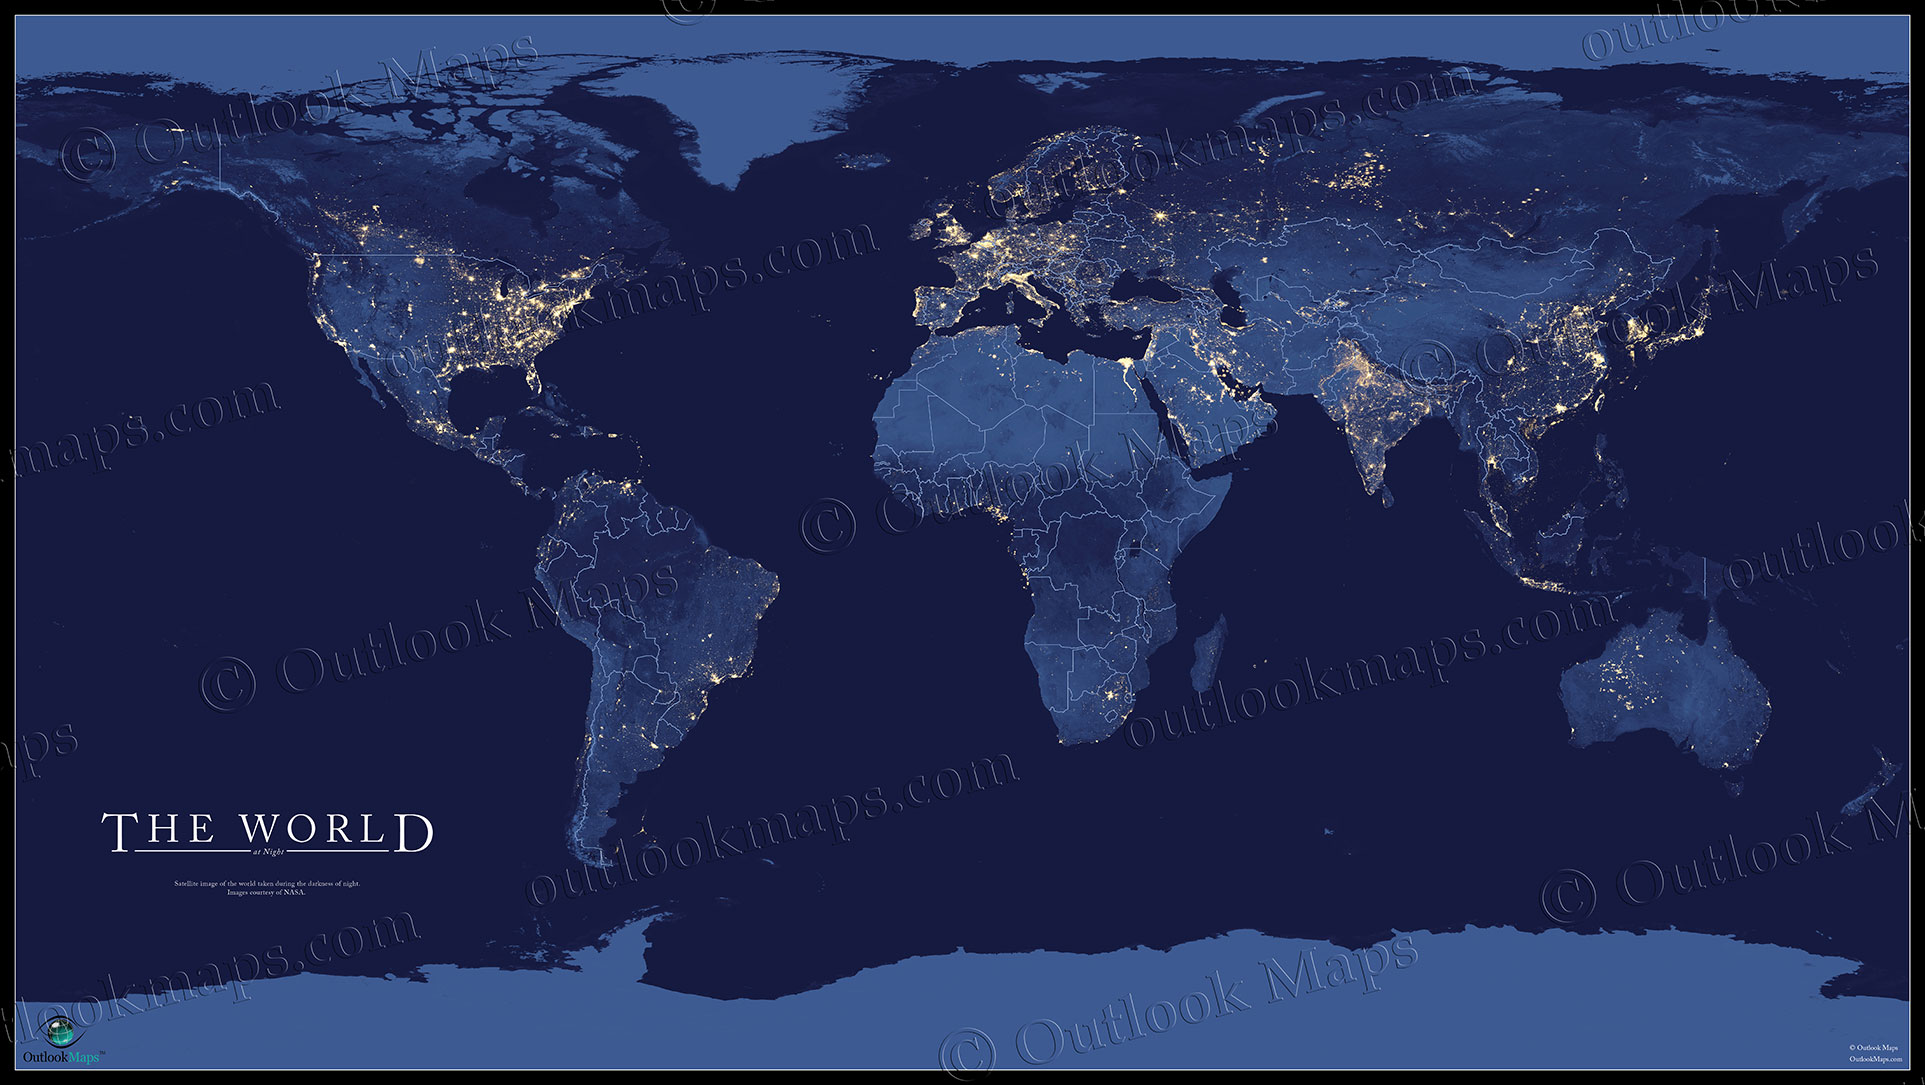 World map at night nasa satellite view of city lights world wall map at darkness showing city lights at night gumiabroncs Gallery